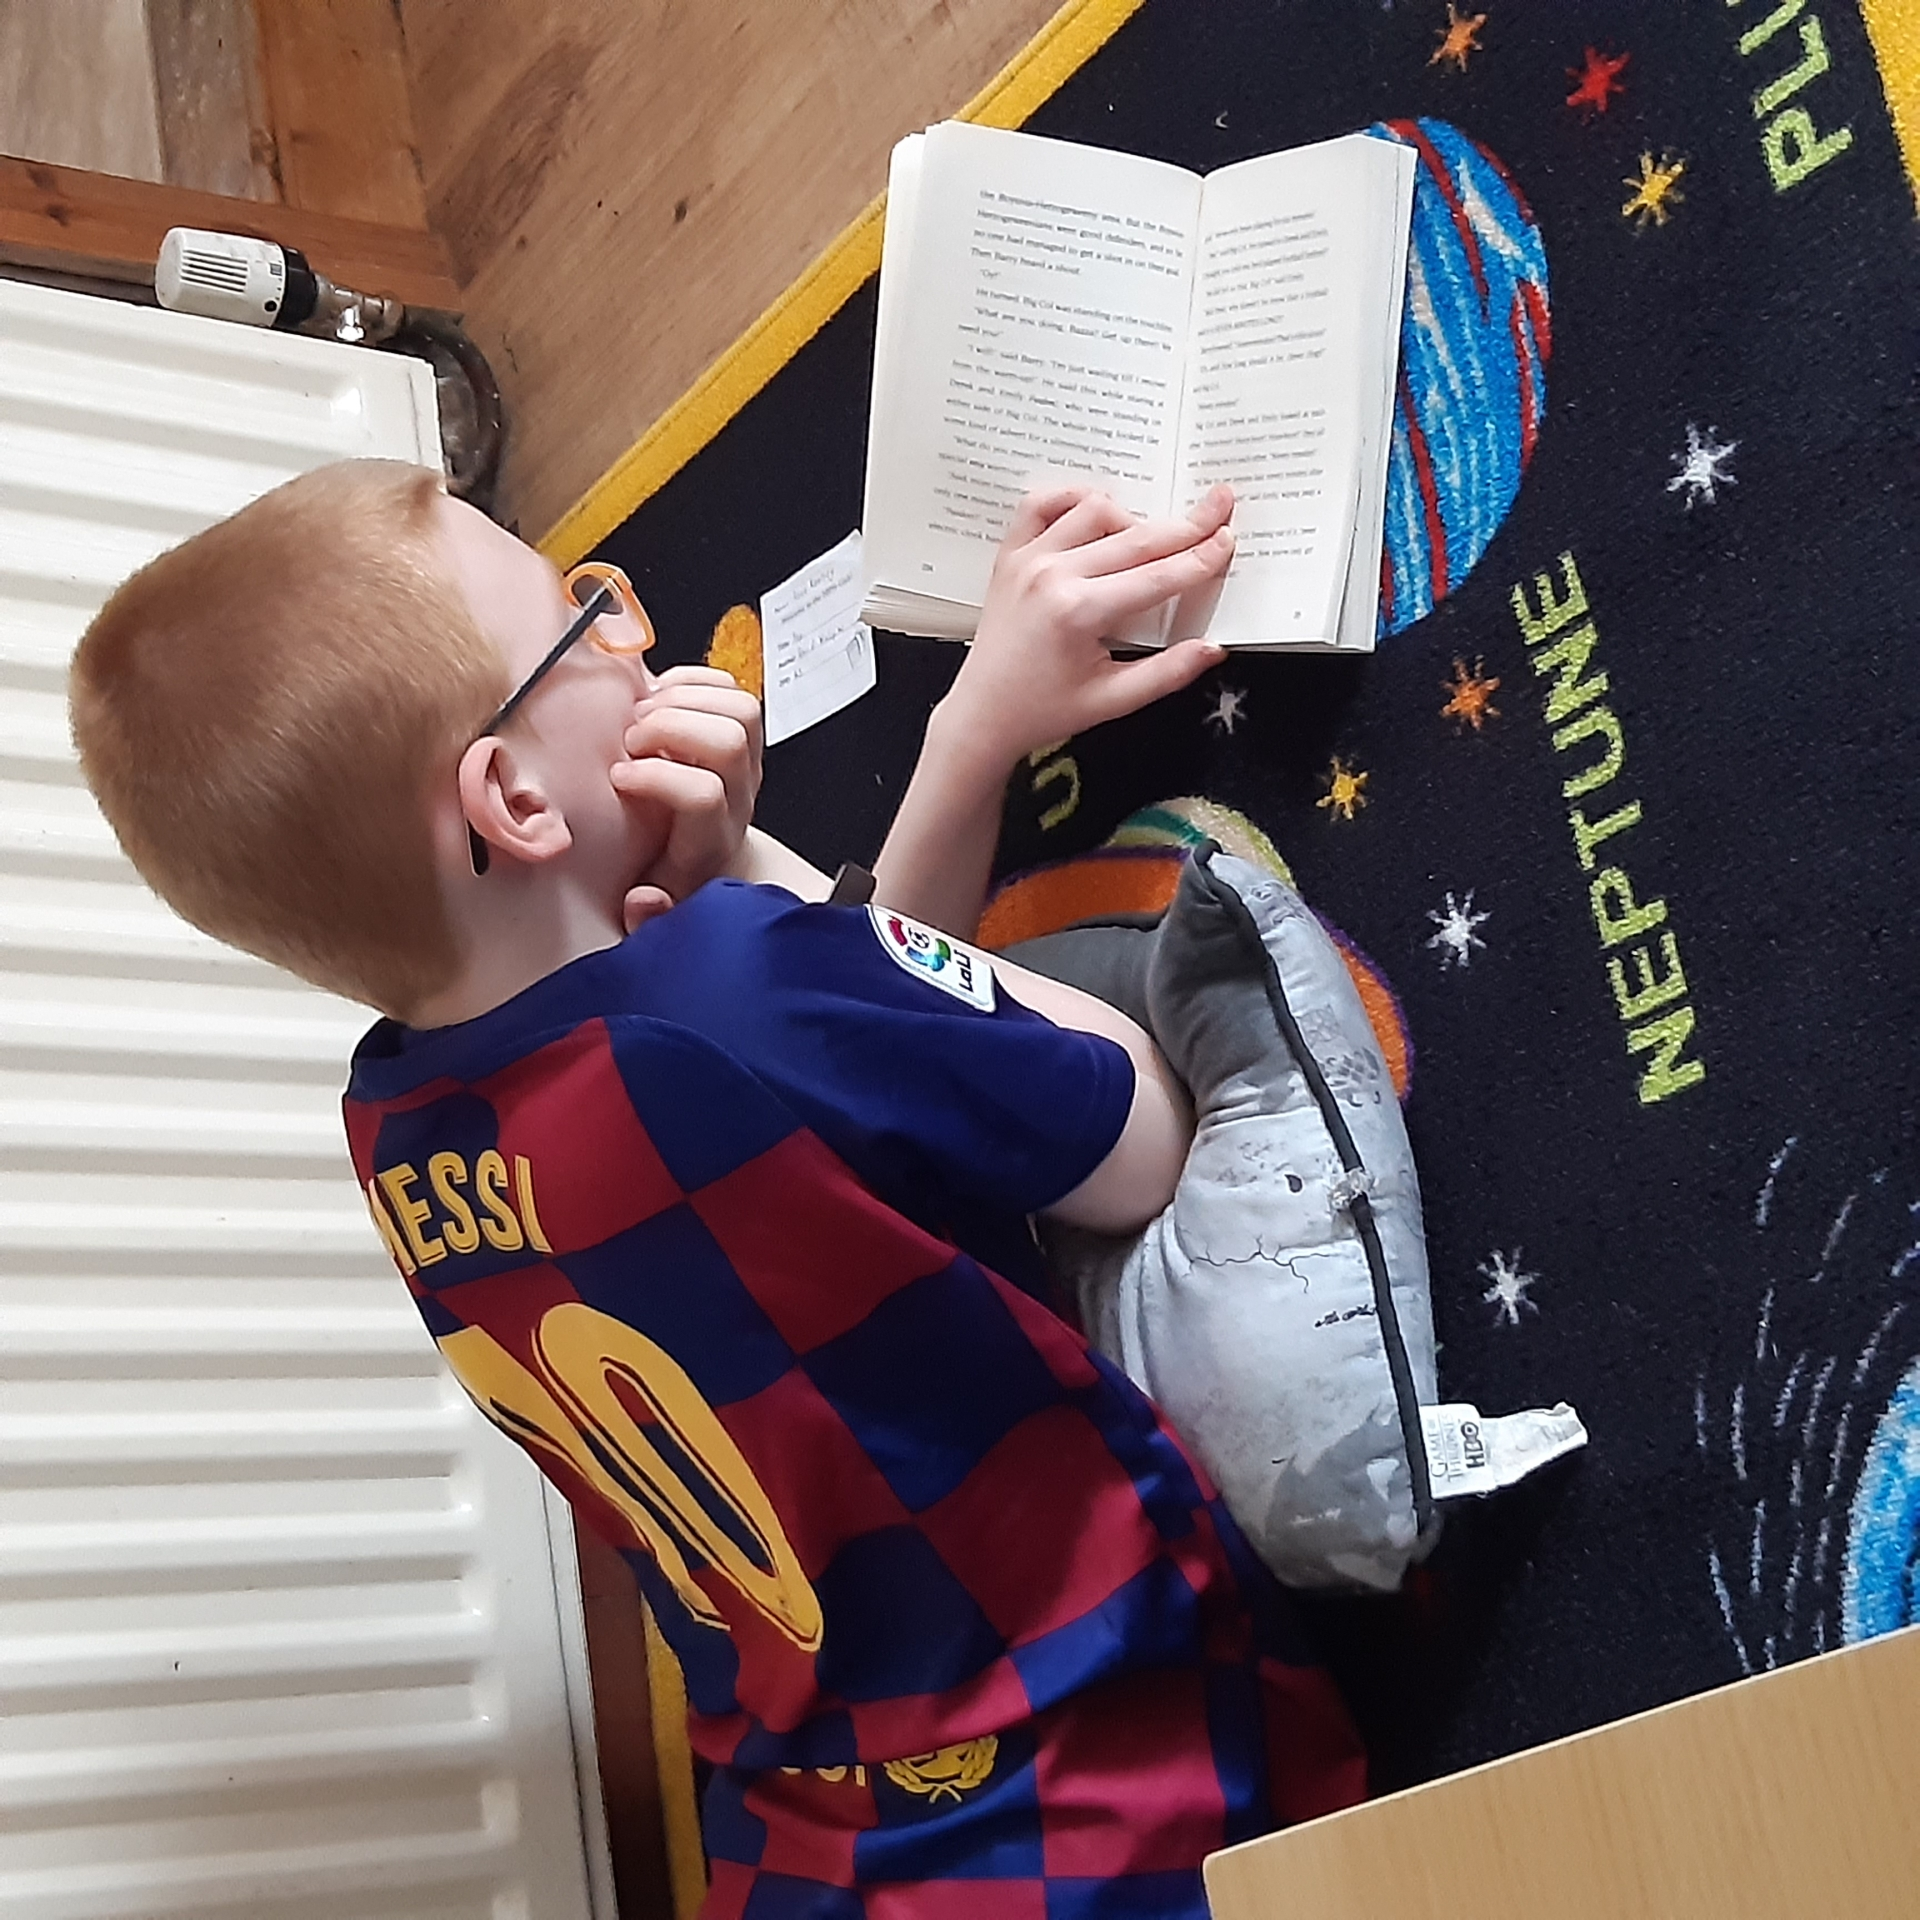 PJ Agnew from St John's PS, Swatragh catches up on his Accelerated Reading.